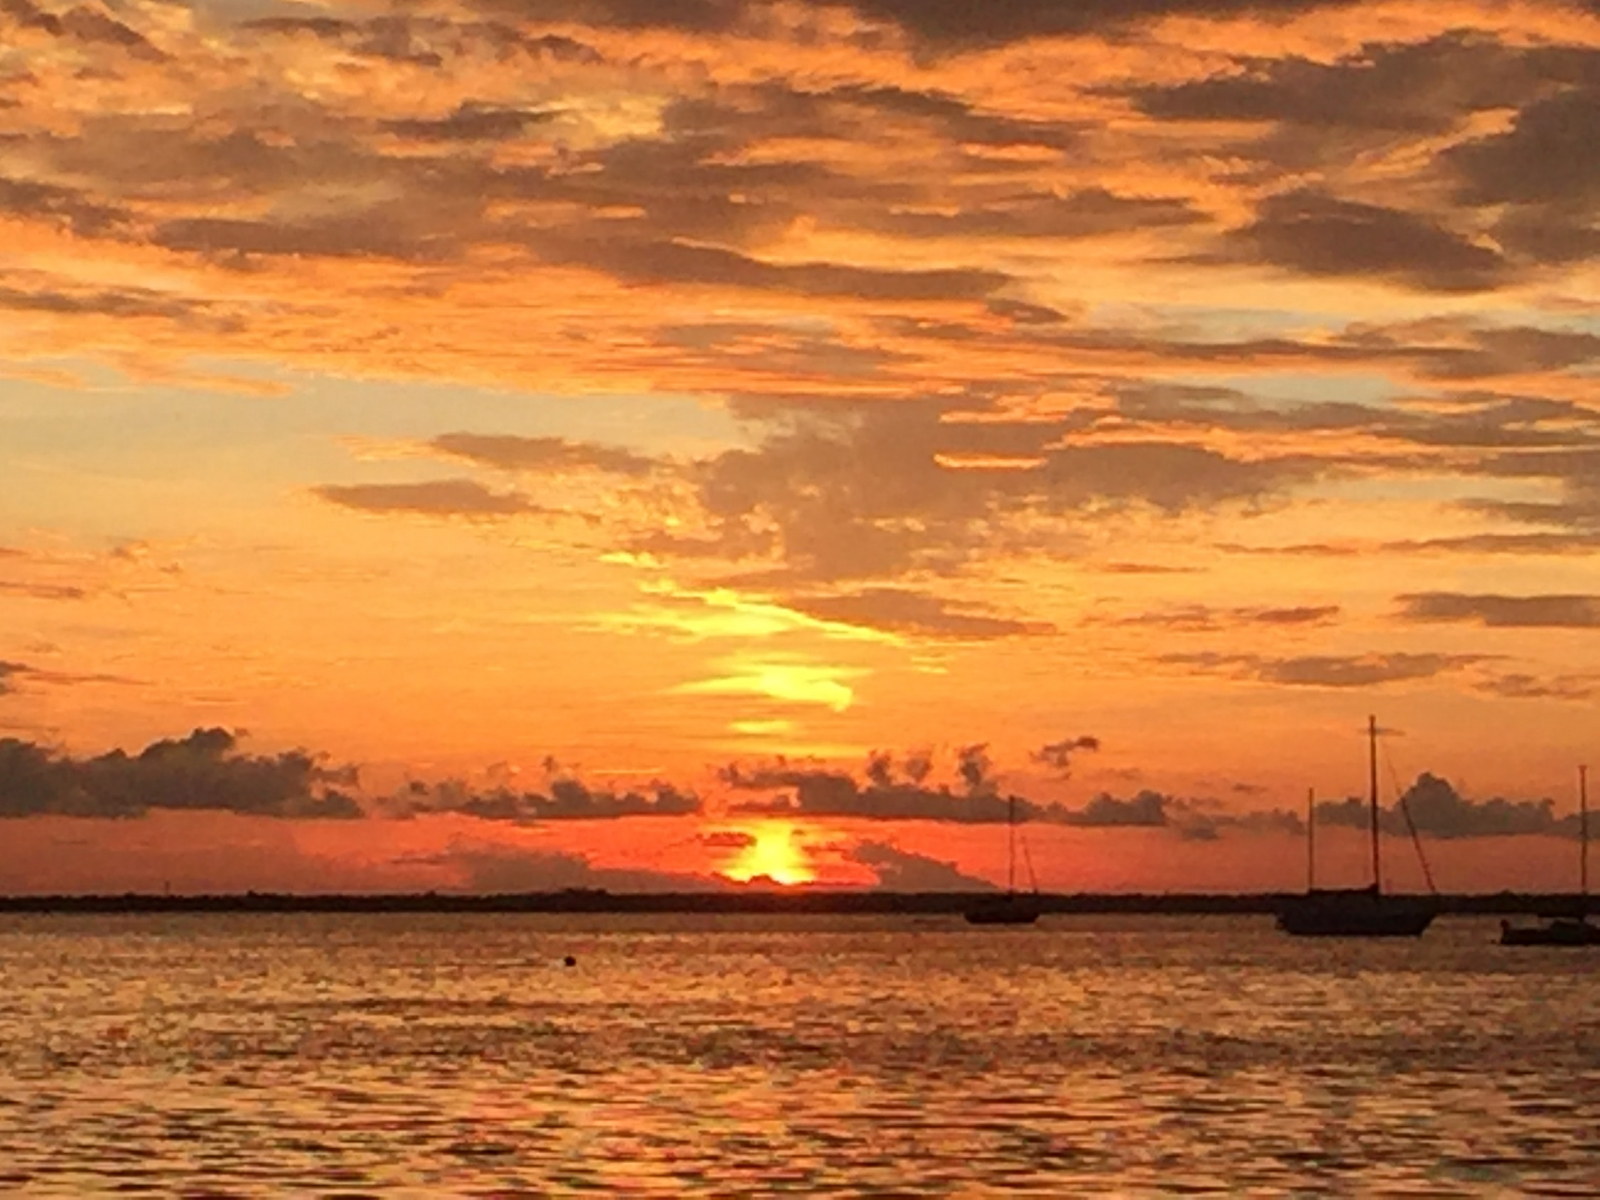 Sunset over Charlotte Harbor